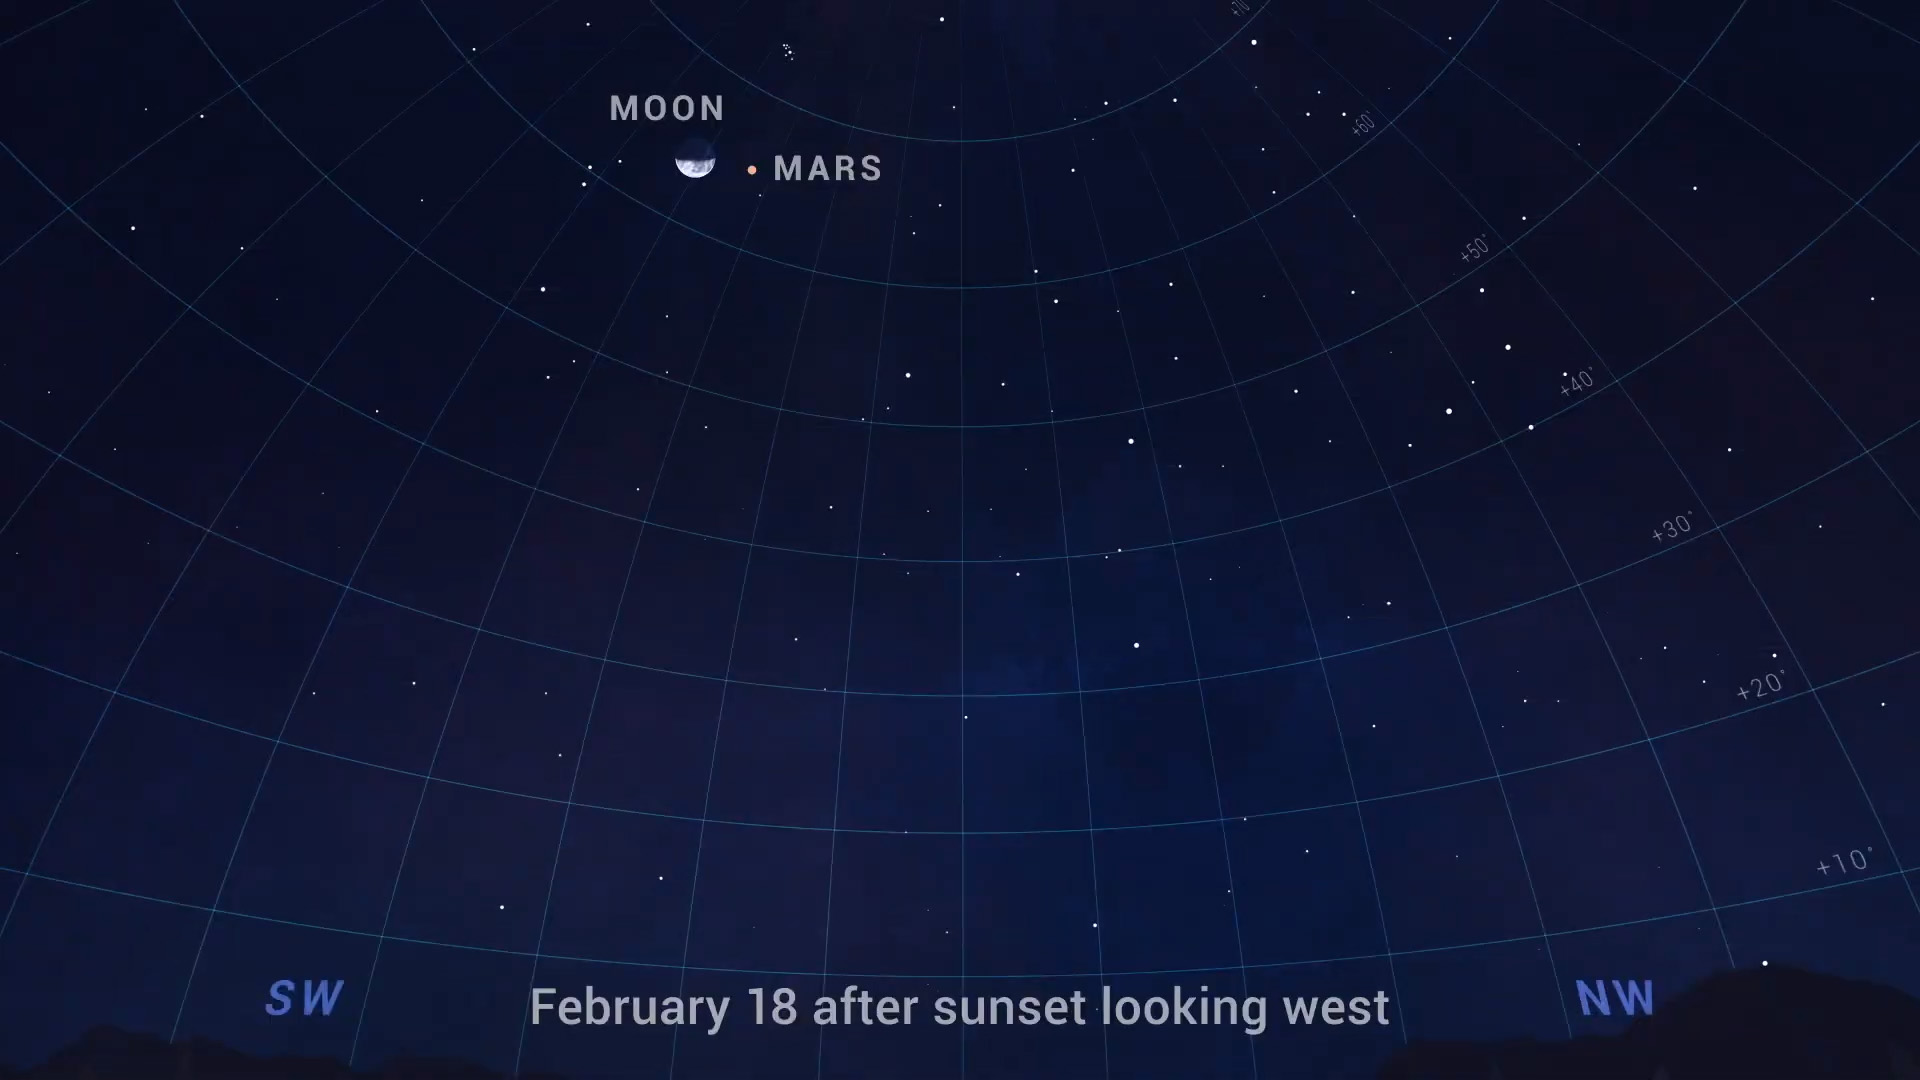 Chart showing Mars and the Moon in the night sky to the west on Feb. 18, 2021